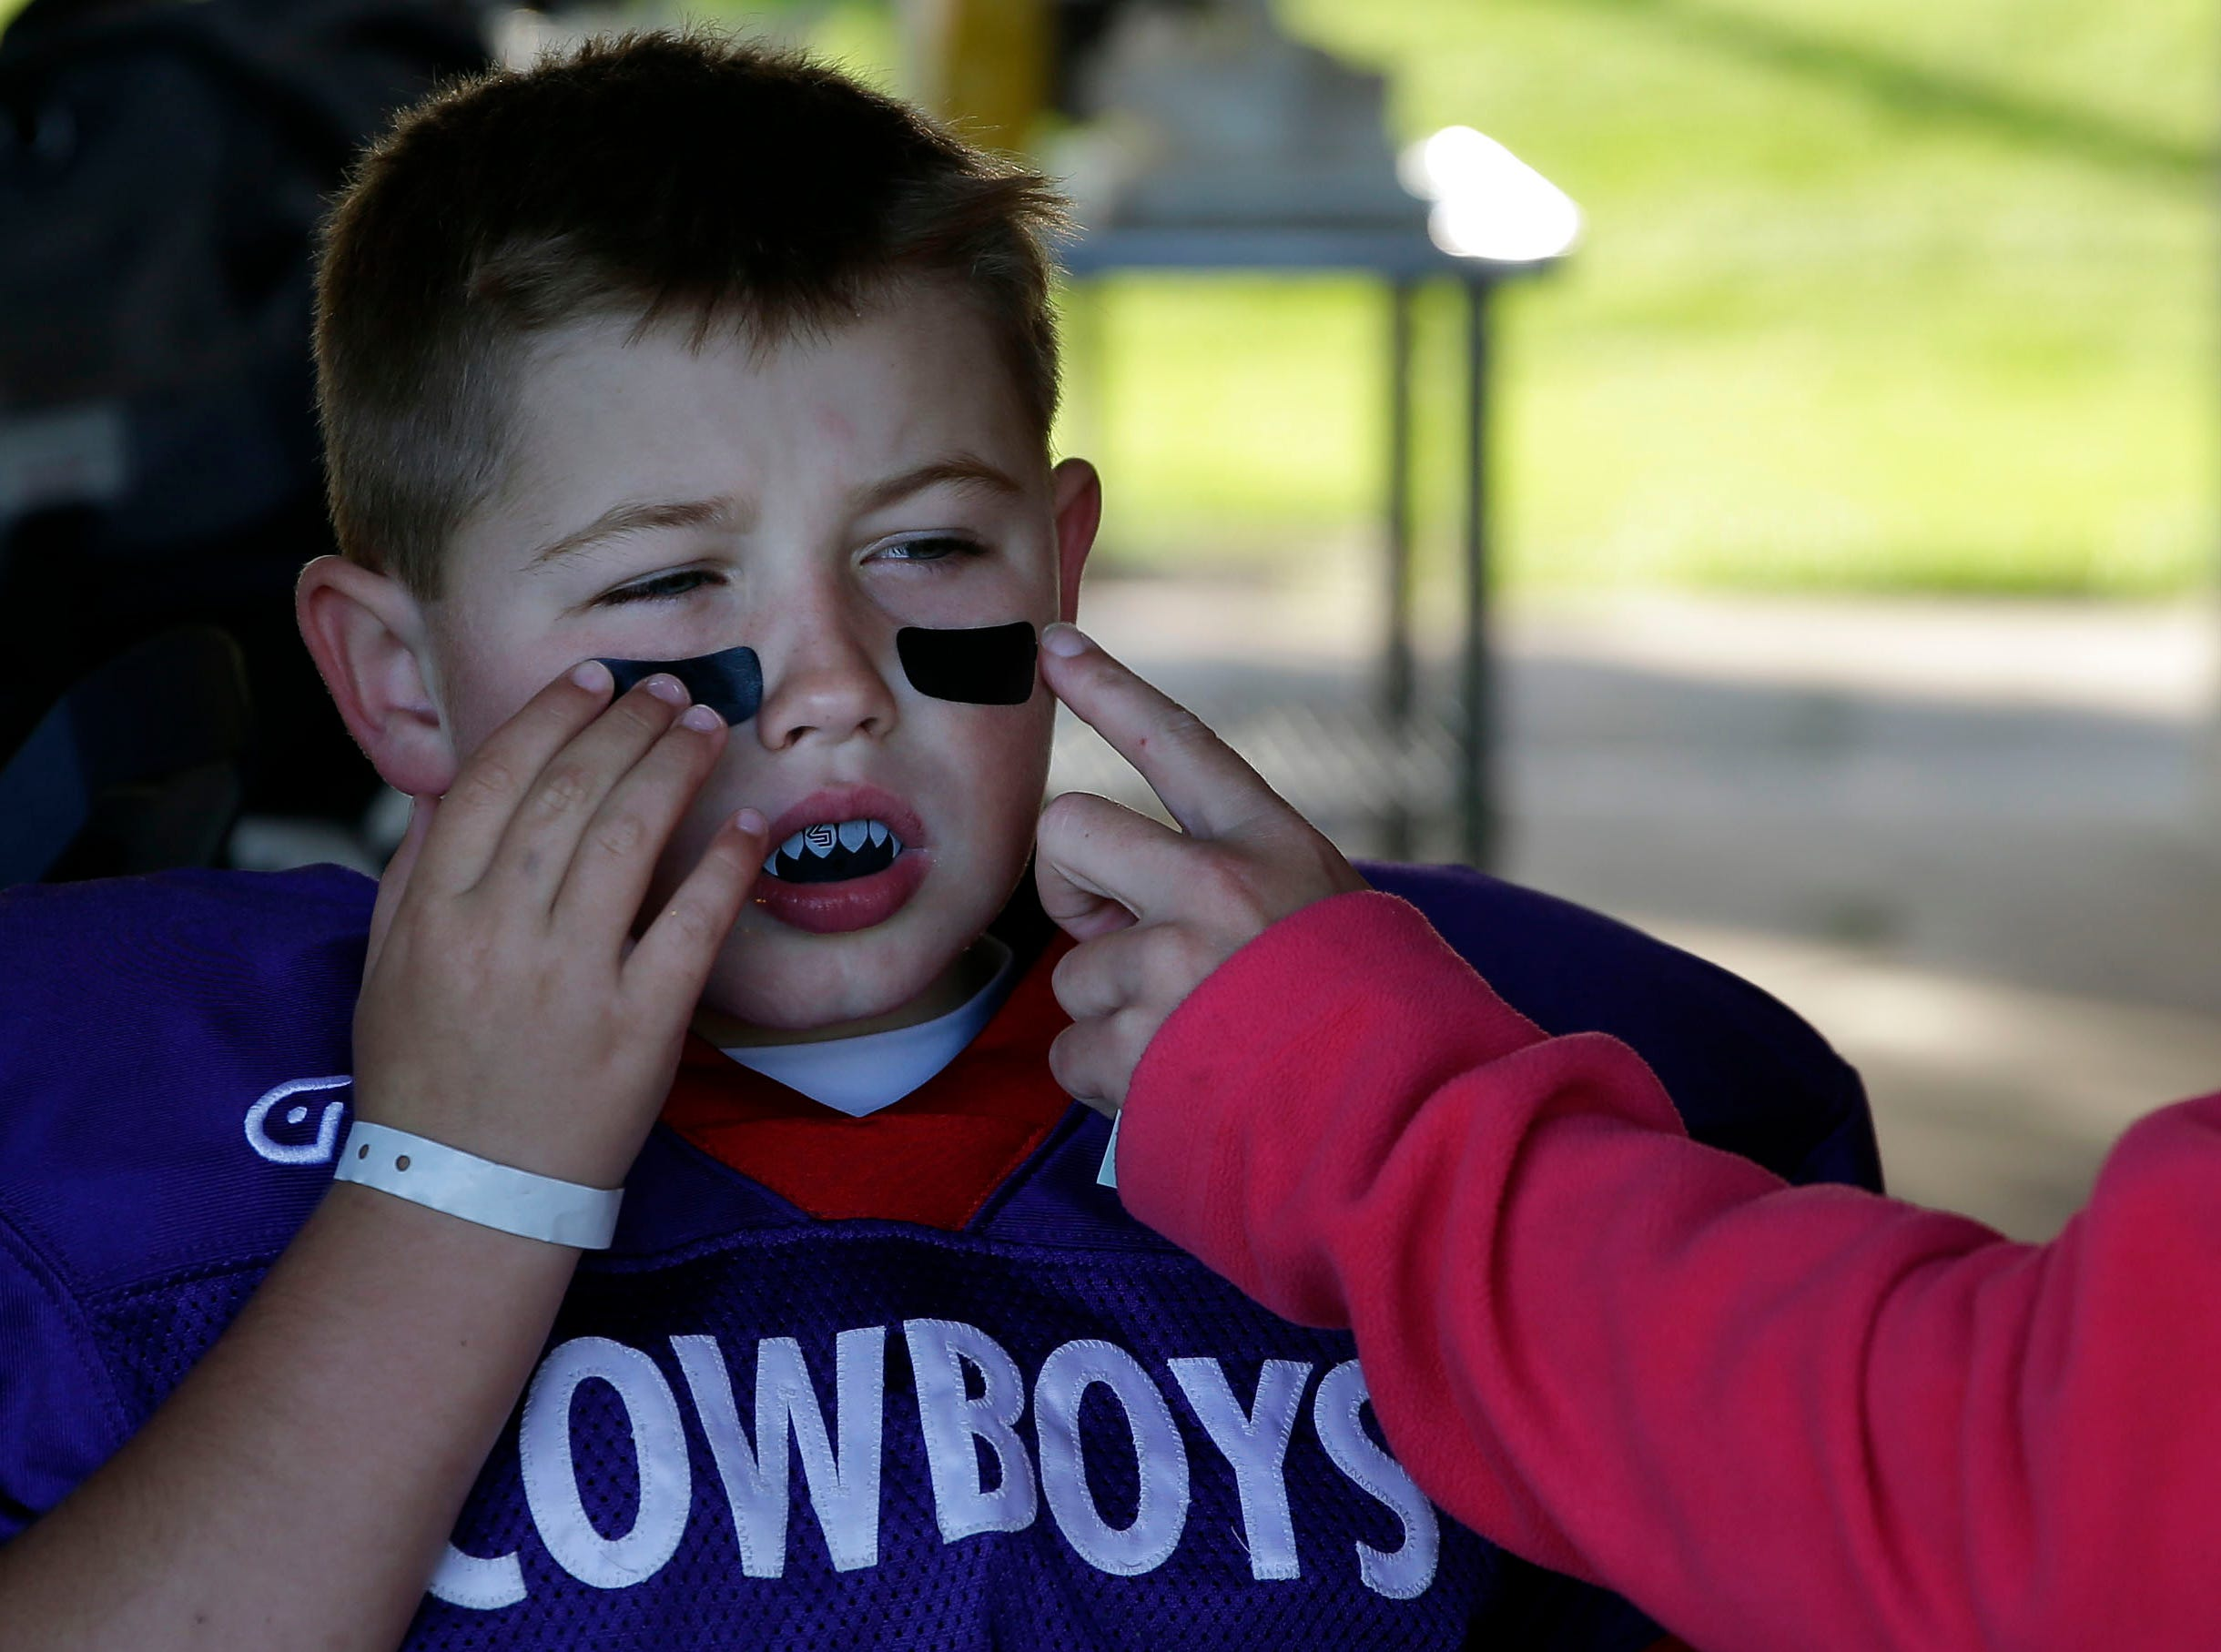 Jaxon Hill of the Cowboys gets help with eye black from his mother, Heather, as Fox Valley Pop Warner Football opens the season Saturday, September 8, 2018, at Plamann Park in Grand Chute, Wis.Ron Page/USA TODAY NETWORK-Wisconsin